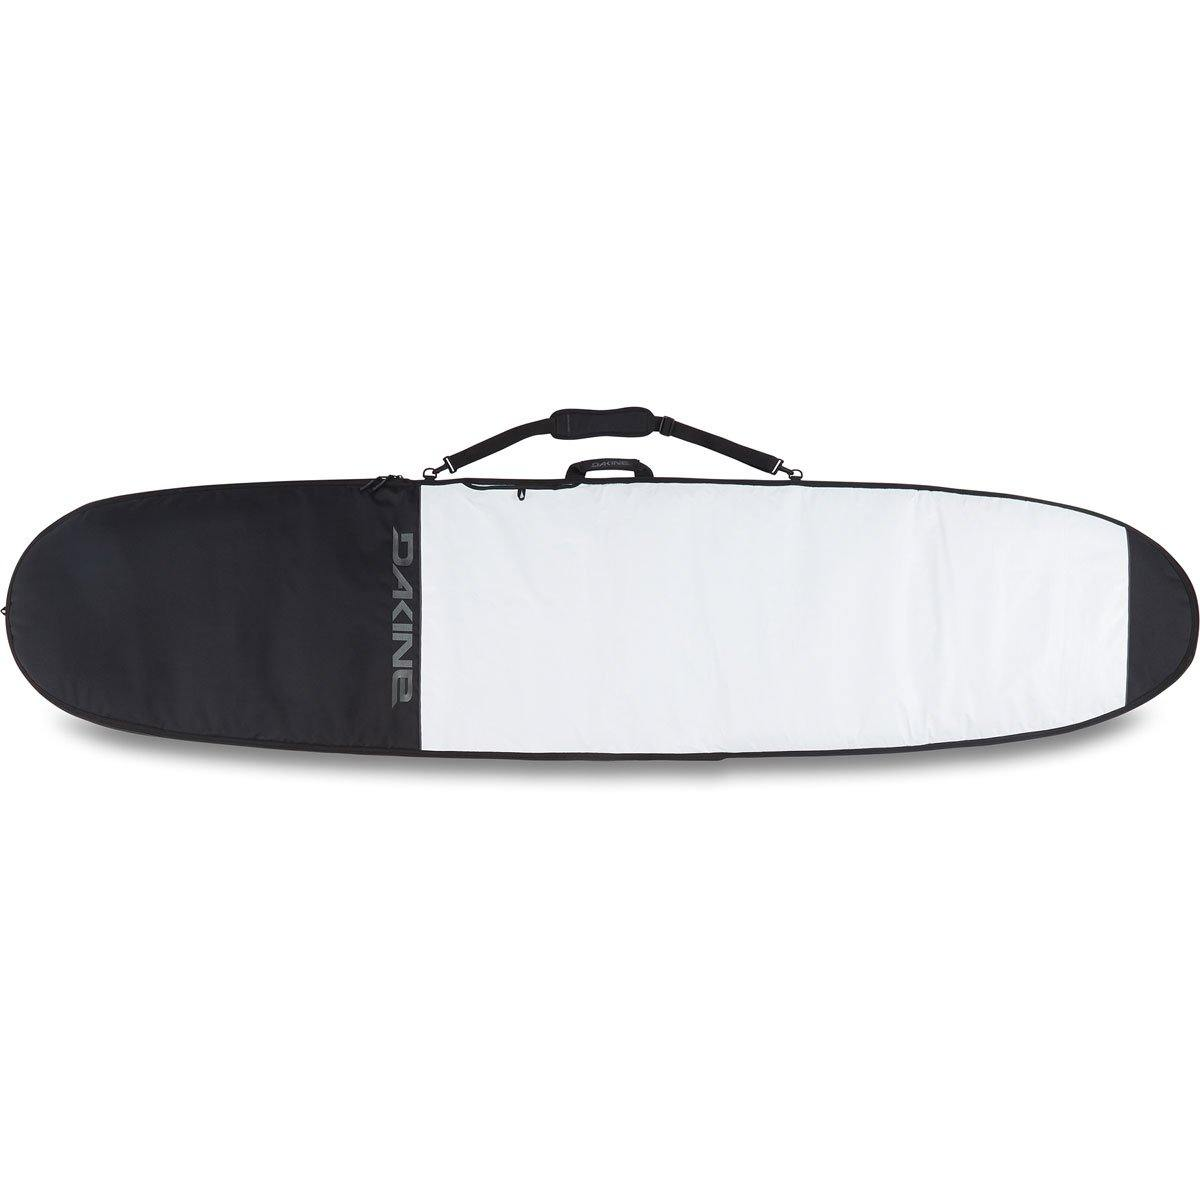 "7'6"" Dakine Daylight Noserider Surfboard Bag - Urban Surf"